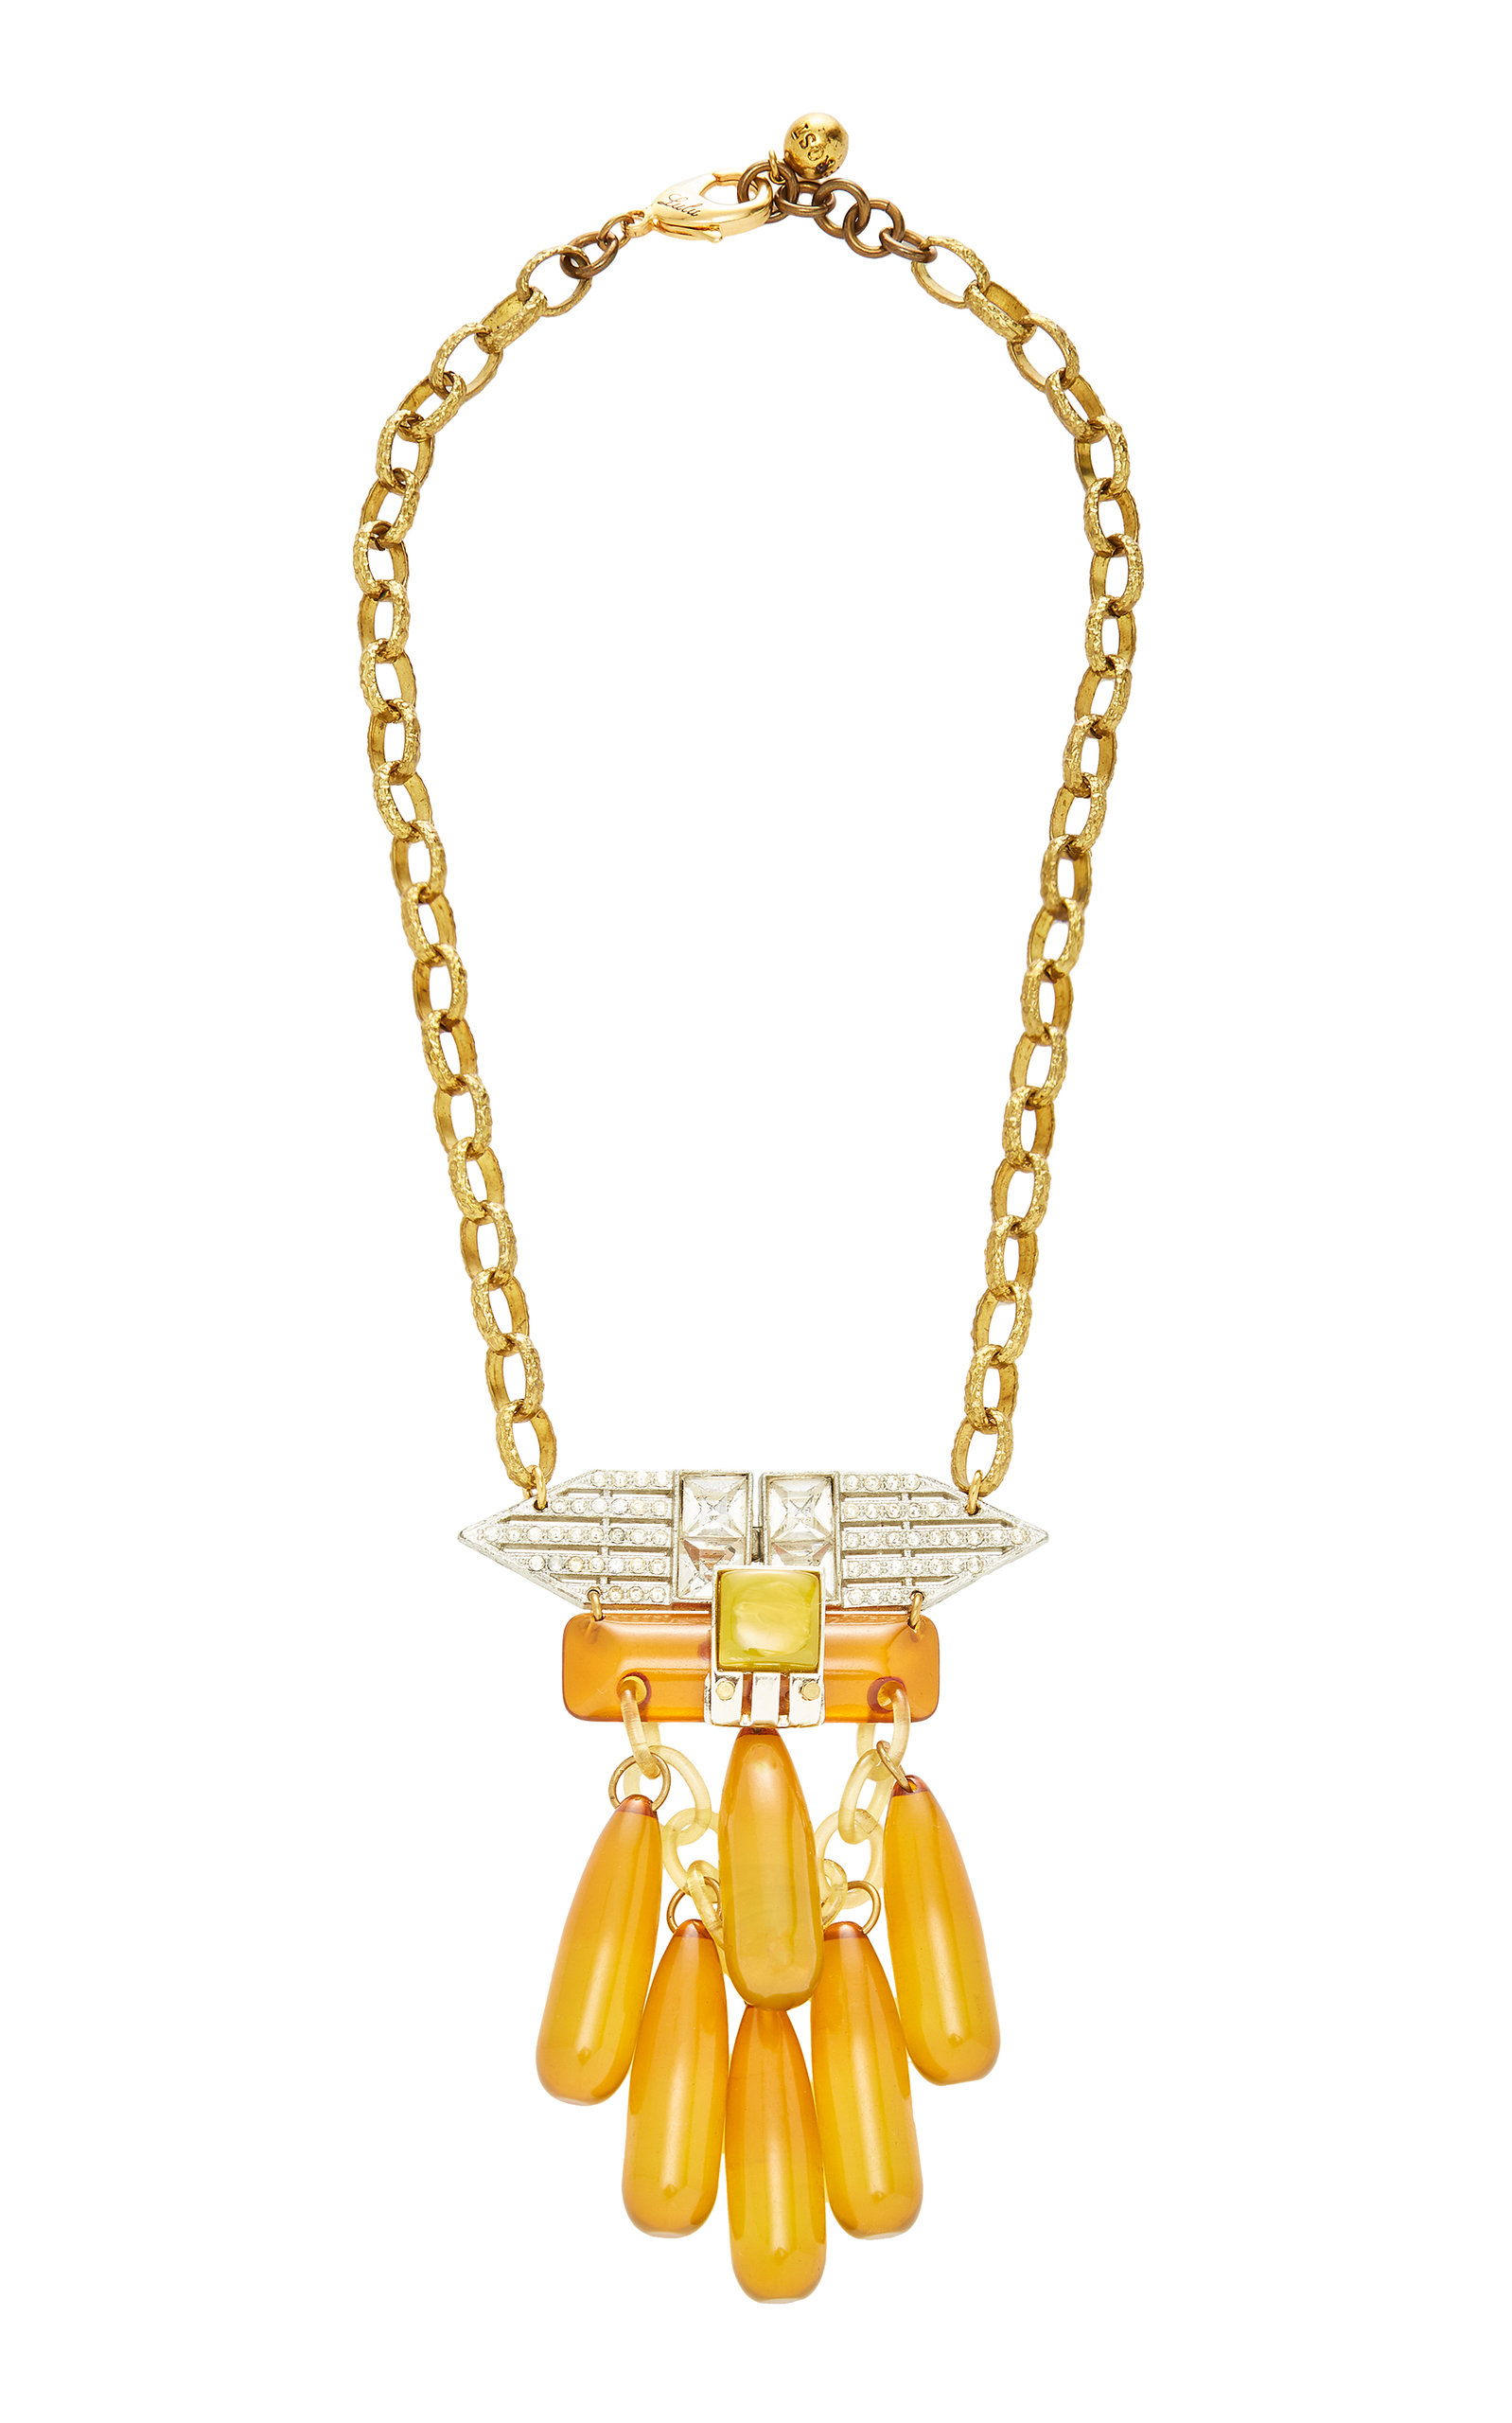 LULU FROST ONE-OF-A-KIND RETRO MODERN NECKLACE